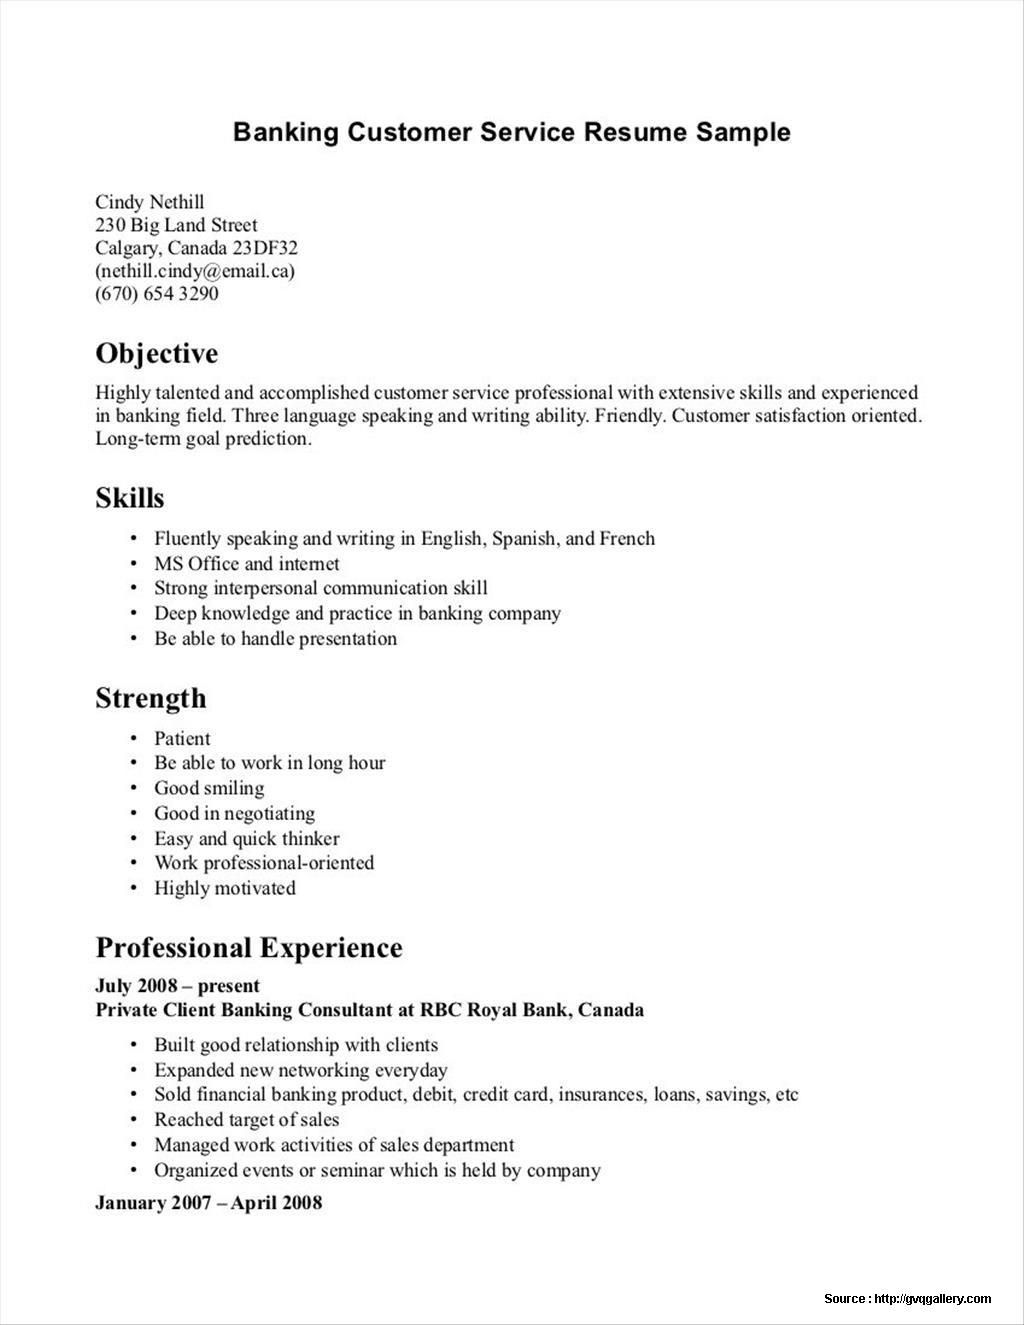 best resume writing services examples k9rgnlmyxb customer service job samples companies Resume Best Resume Writing Companies